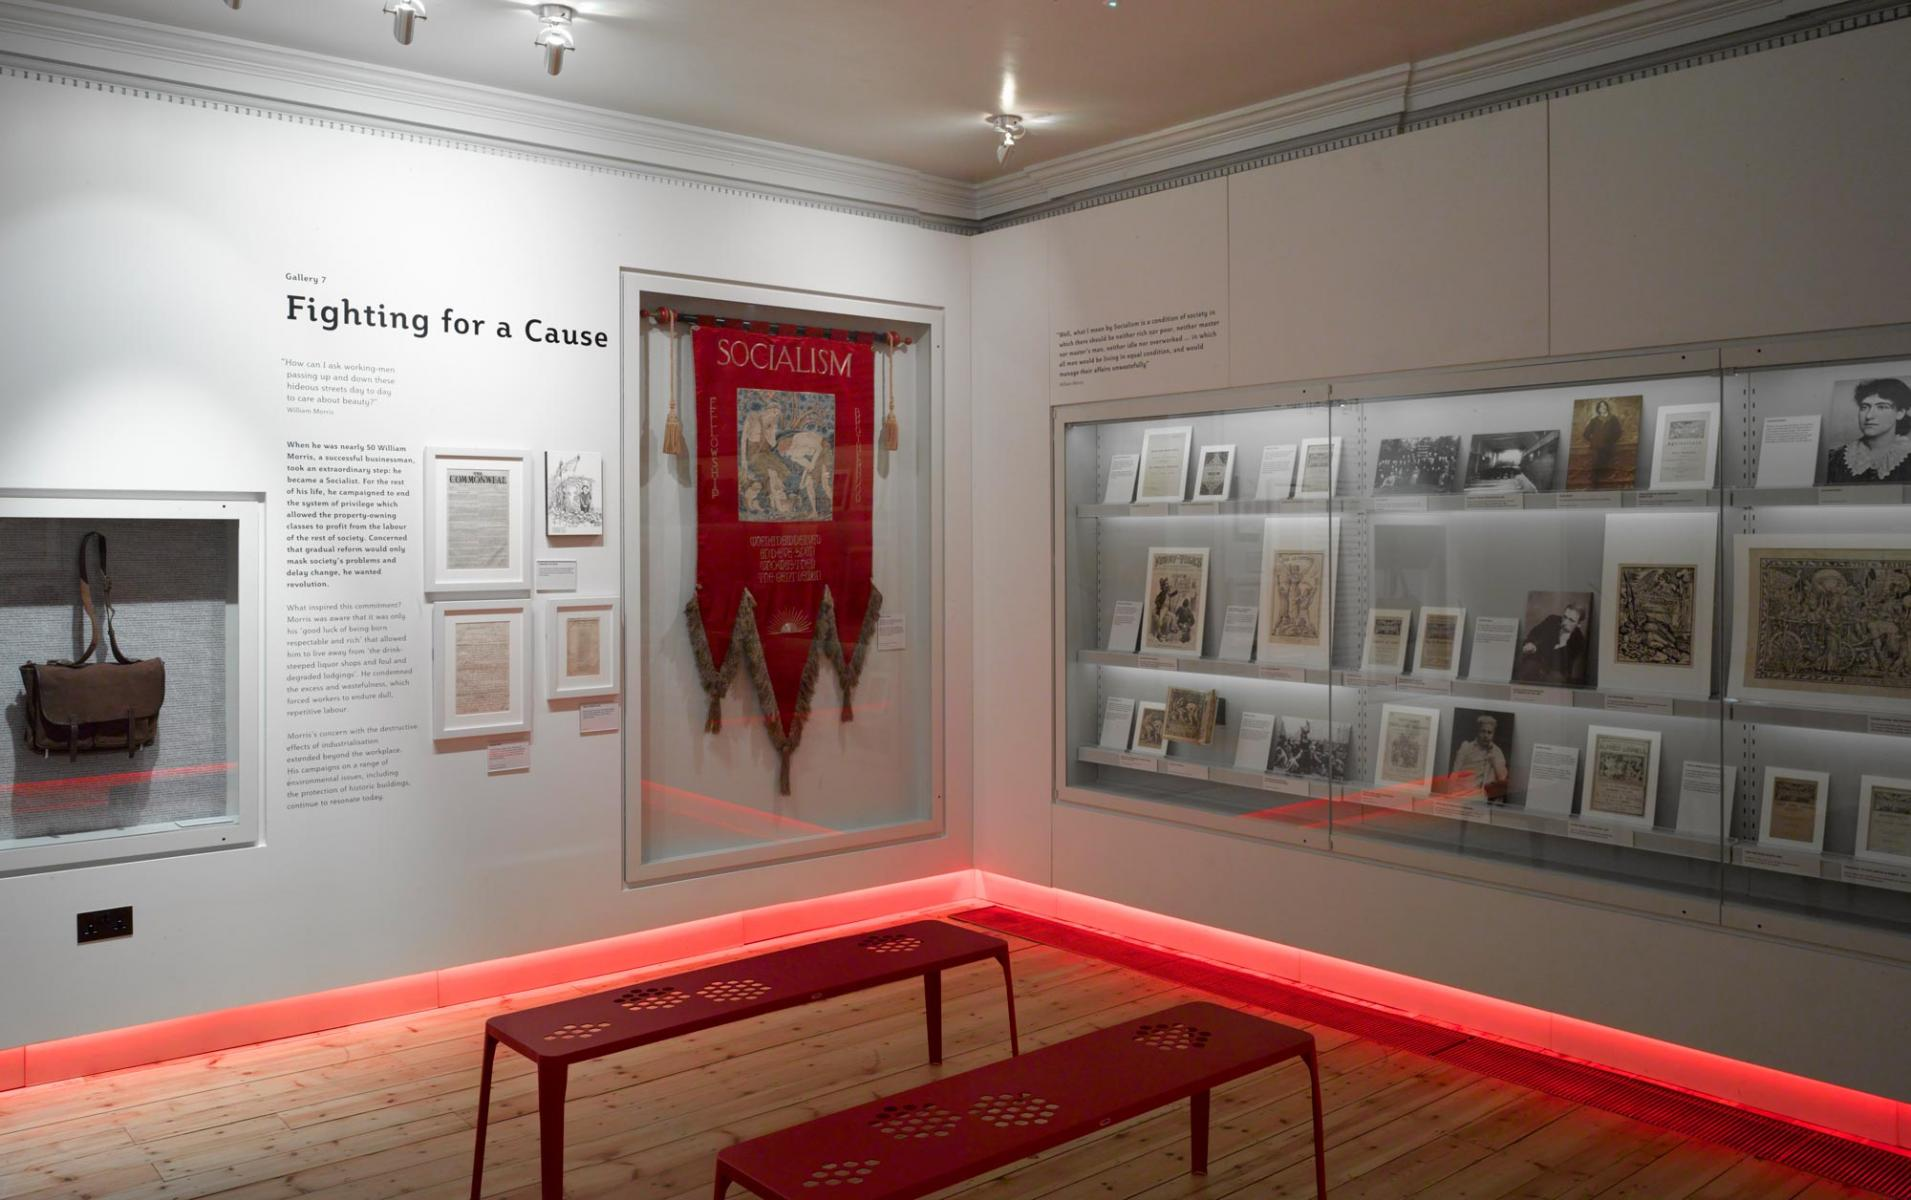 William Morris Gallery, Walthamstow, London - Fighting for a Cause